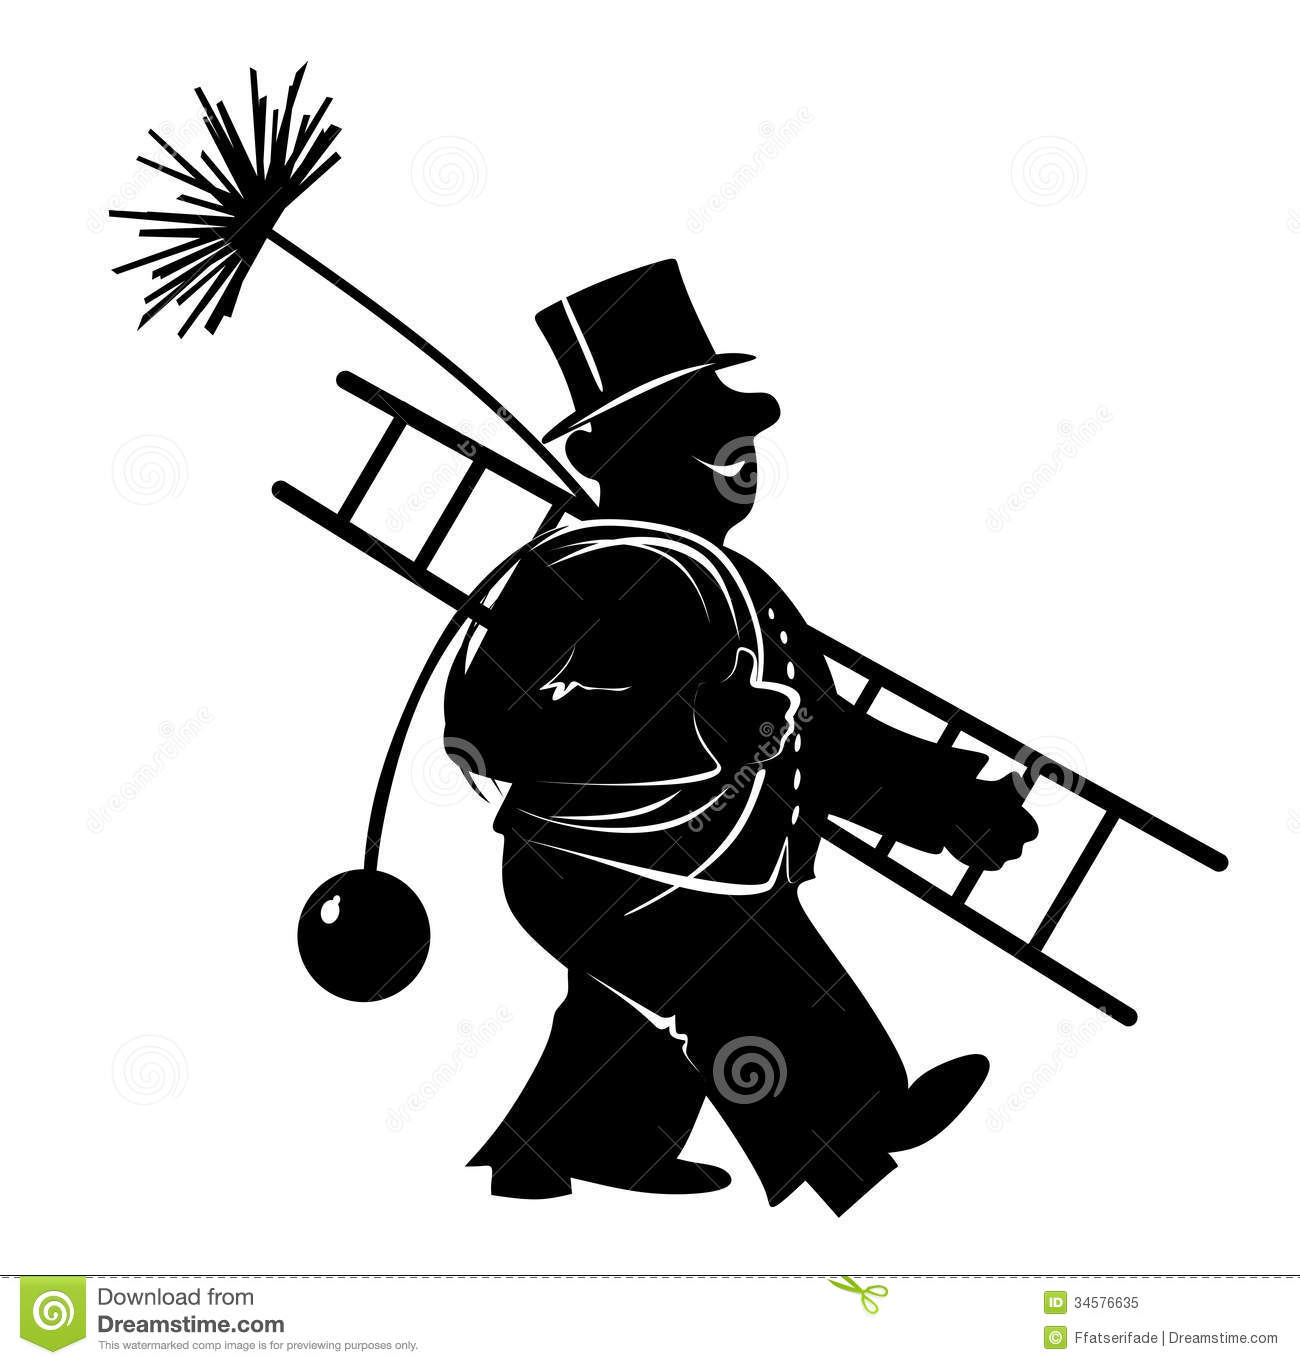 Chimney sweep clipart #17